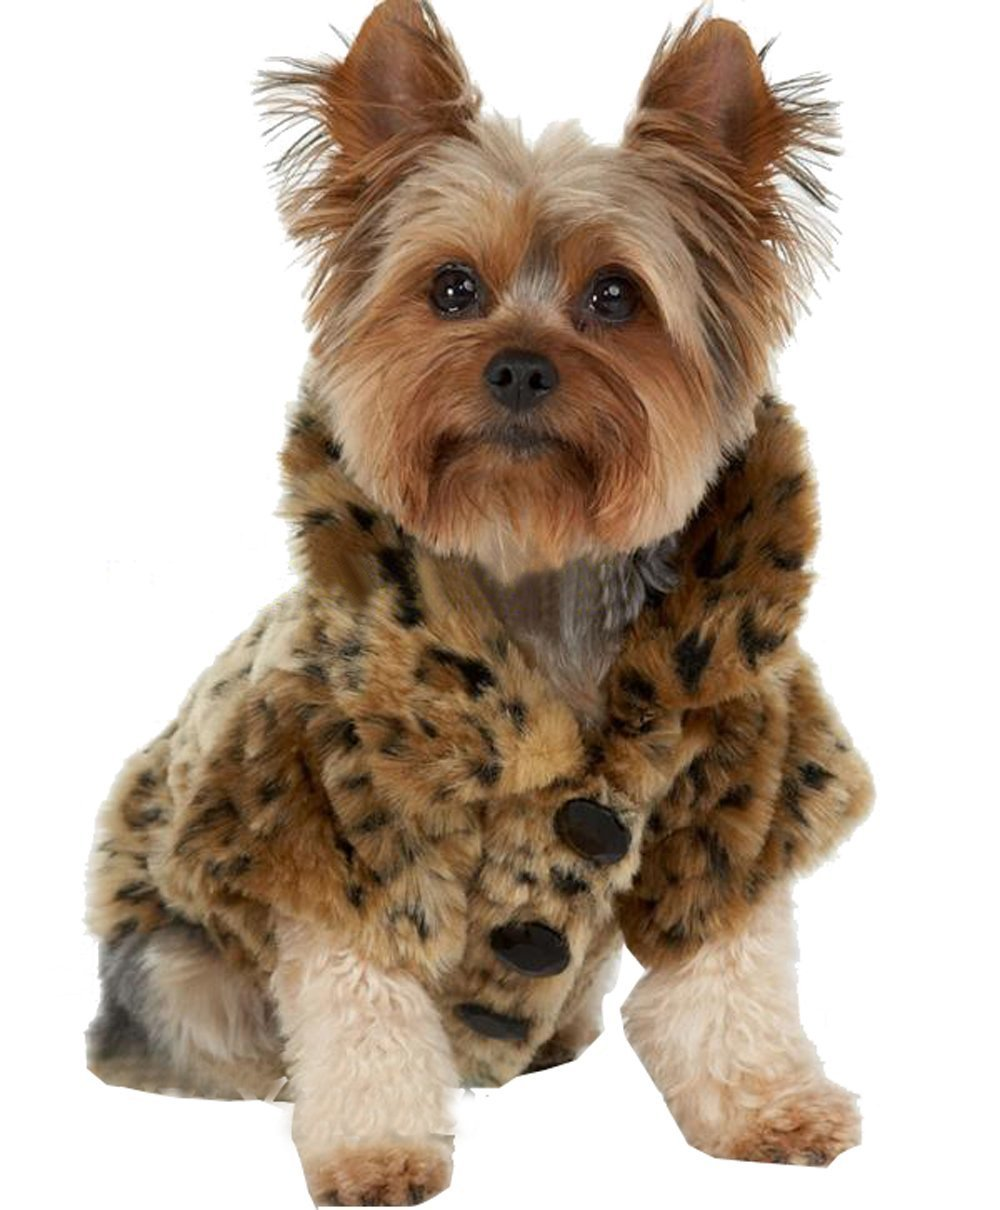 M WISHLAND Fur Coat Leopard Print Big pet Dog Winter Halloween Clothes for Warm Fleece Jacket with Bling Crown